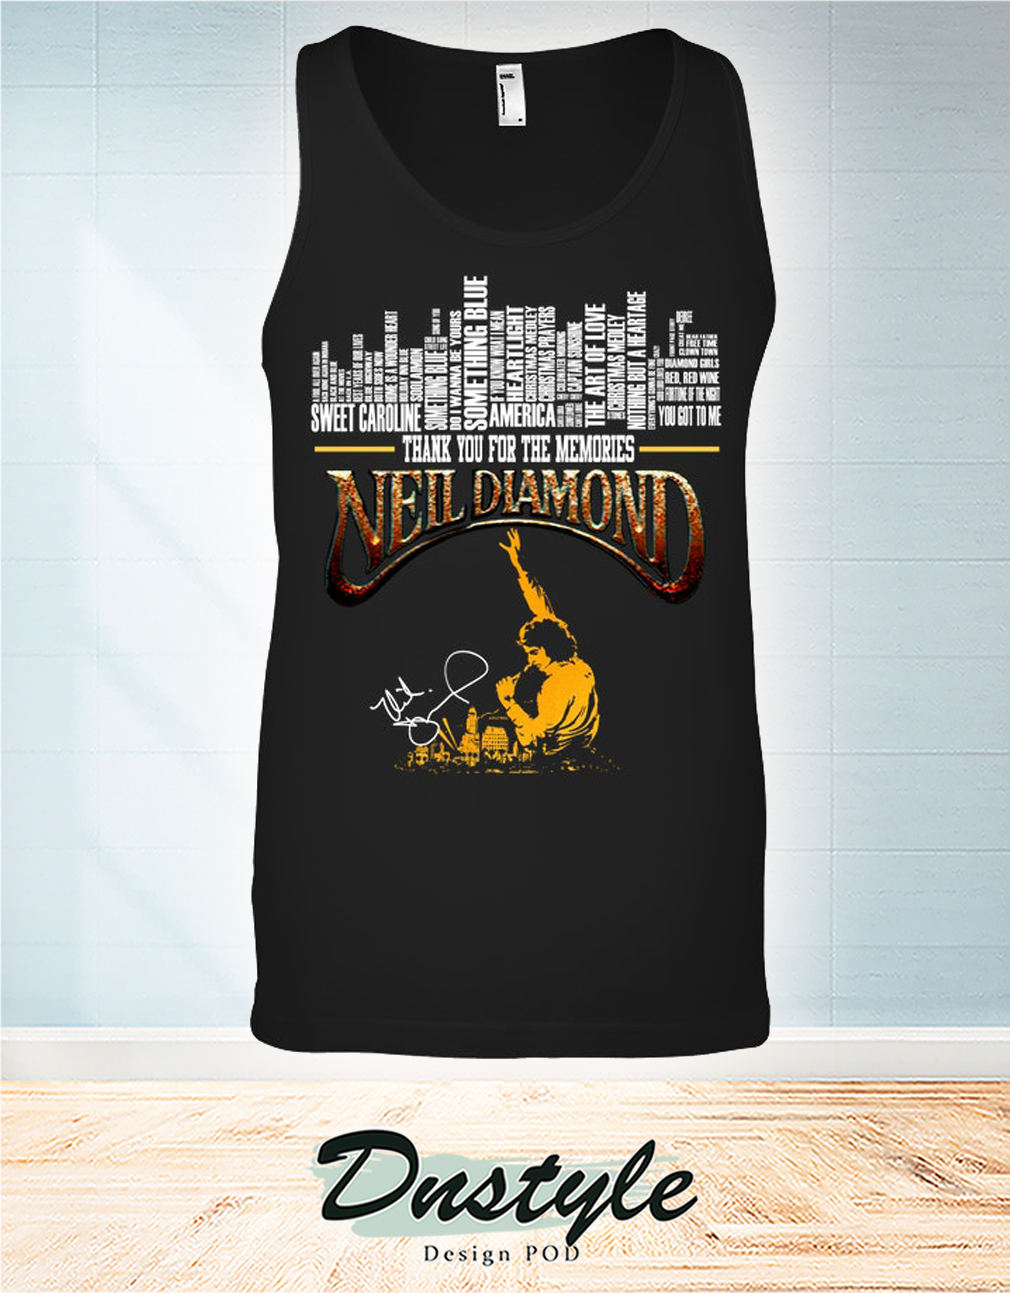 Thank you for the memories Neil Diamond signature tank top